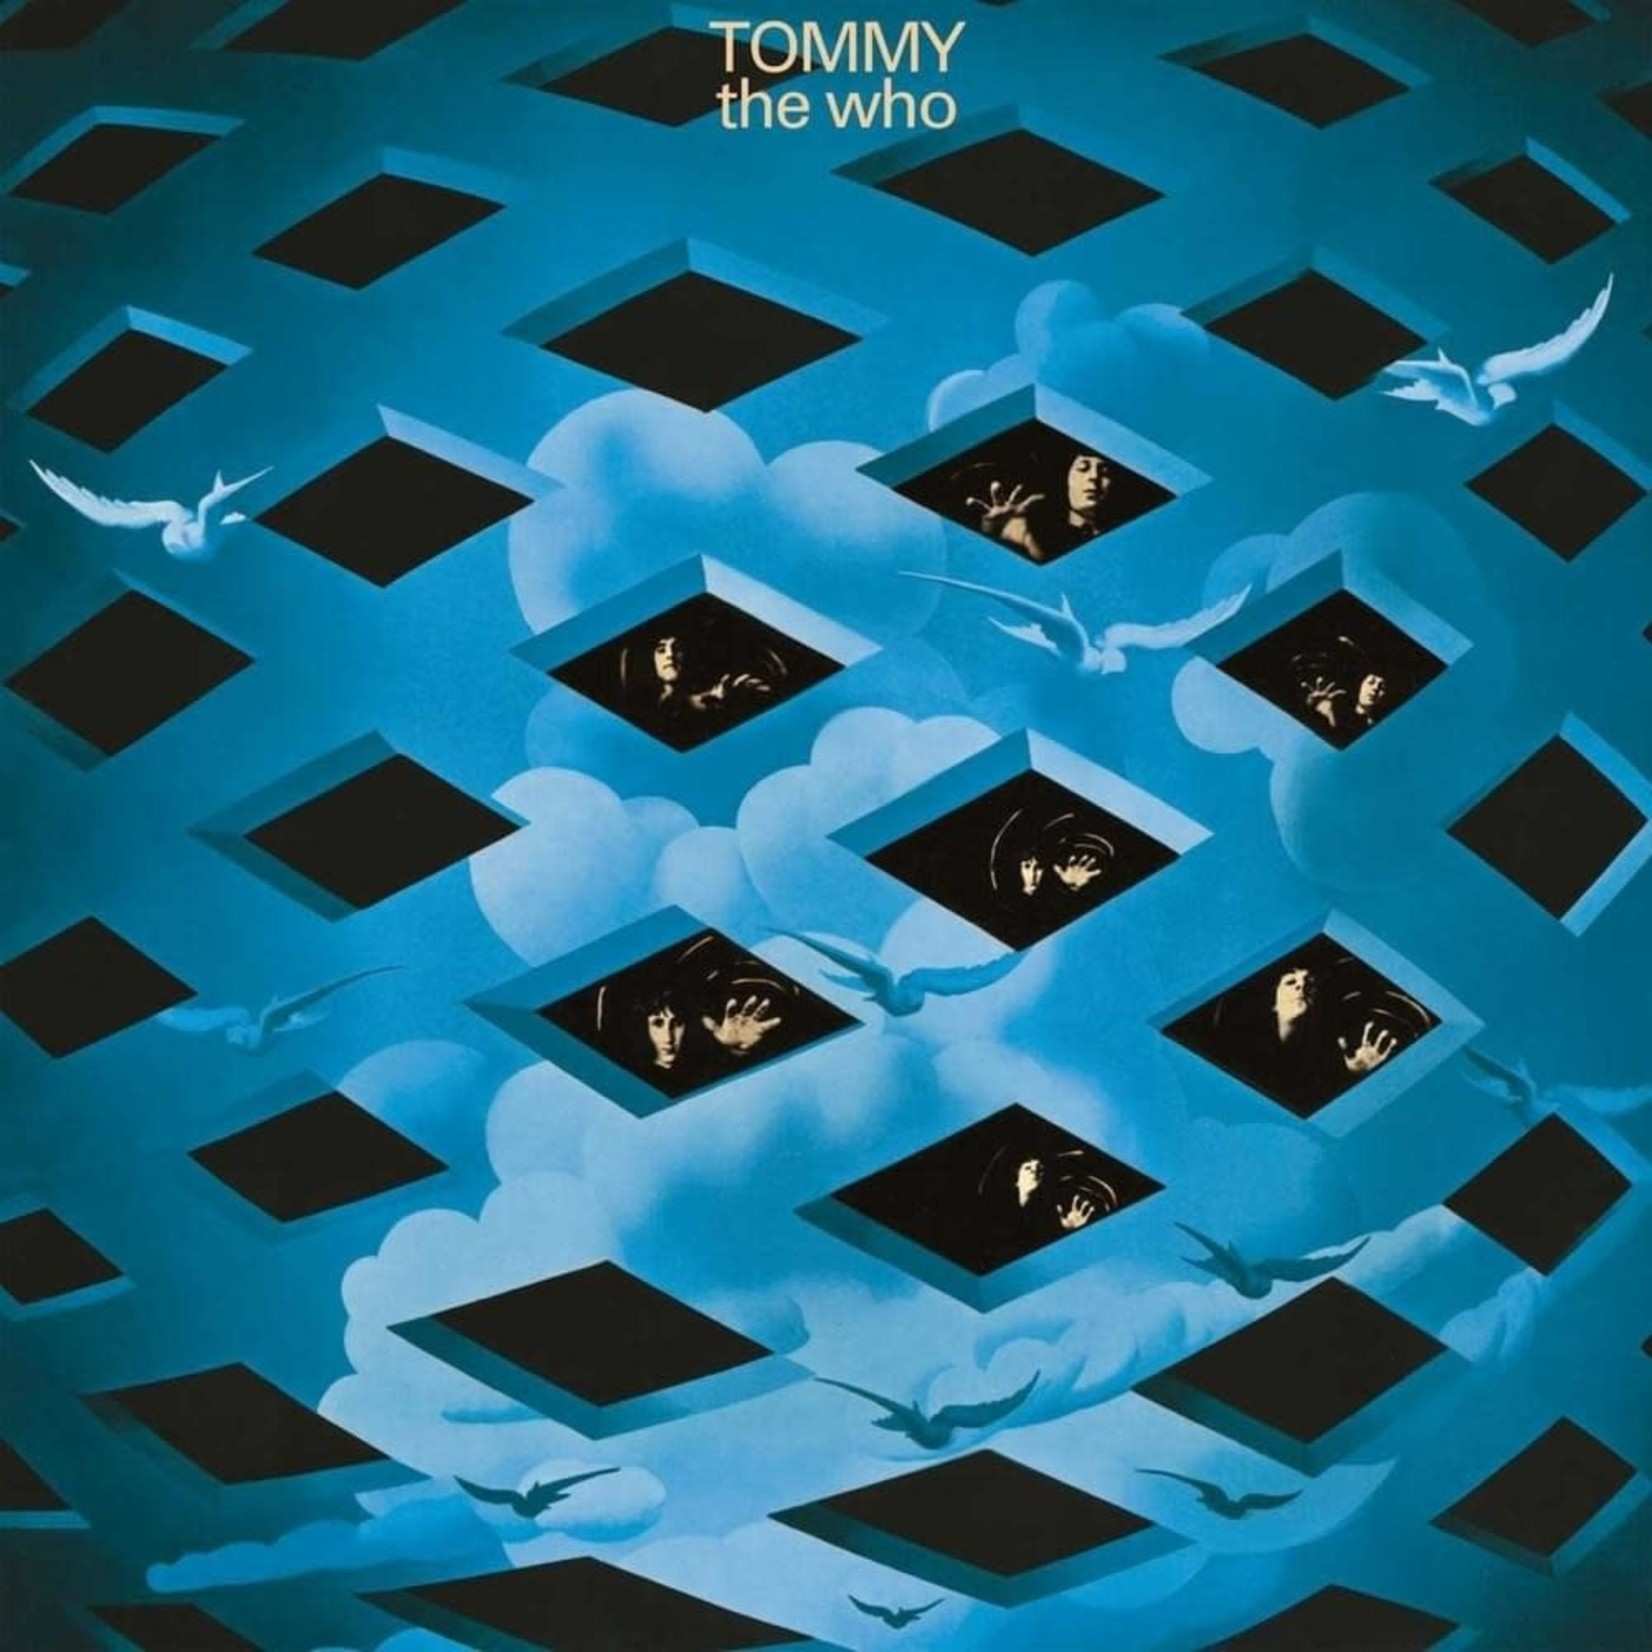 [Vintage] Who: Tommy (blue checkered-cover)